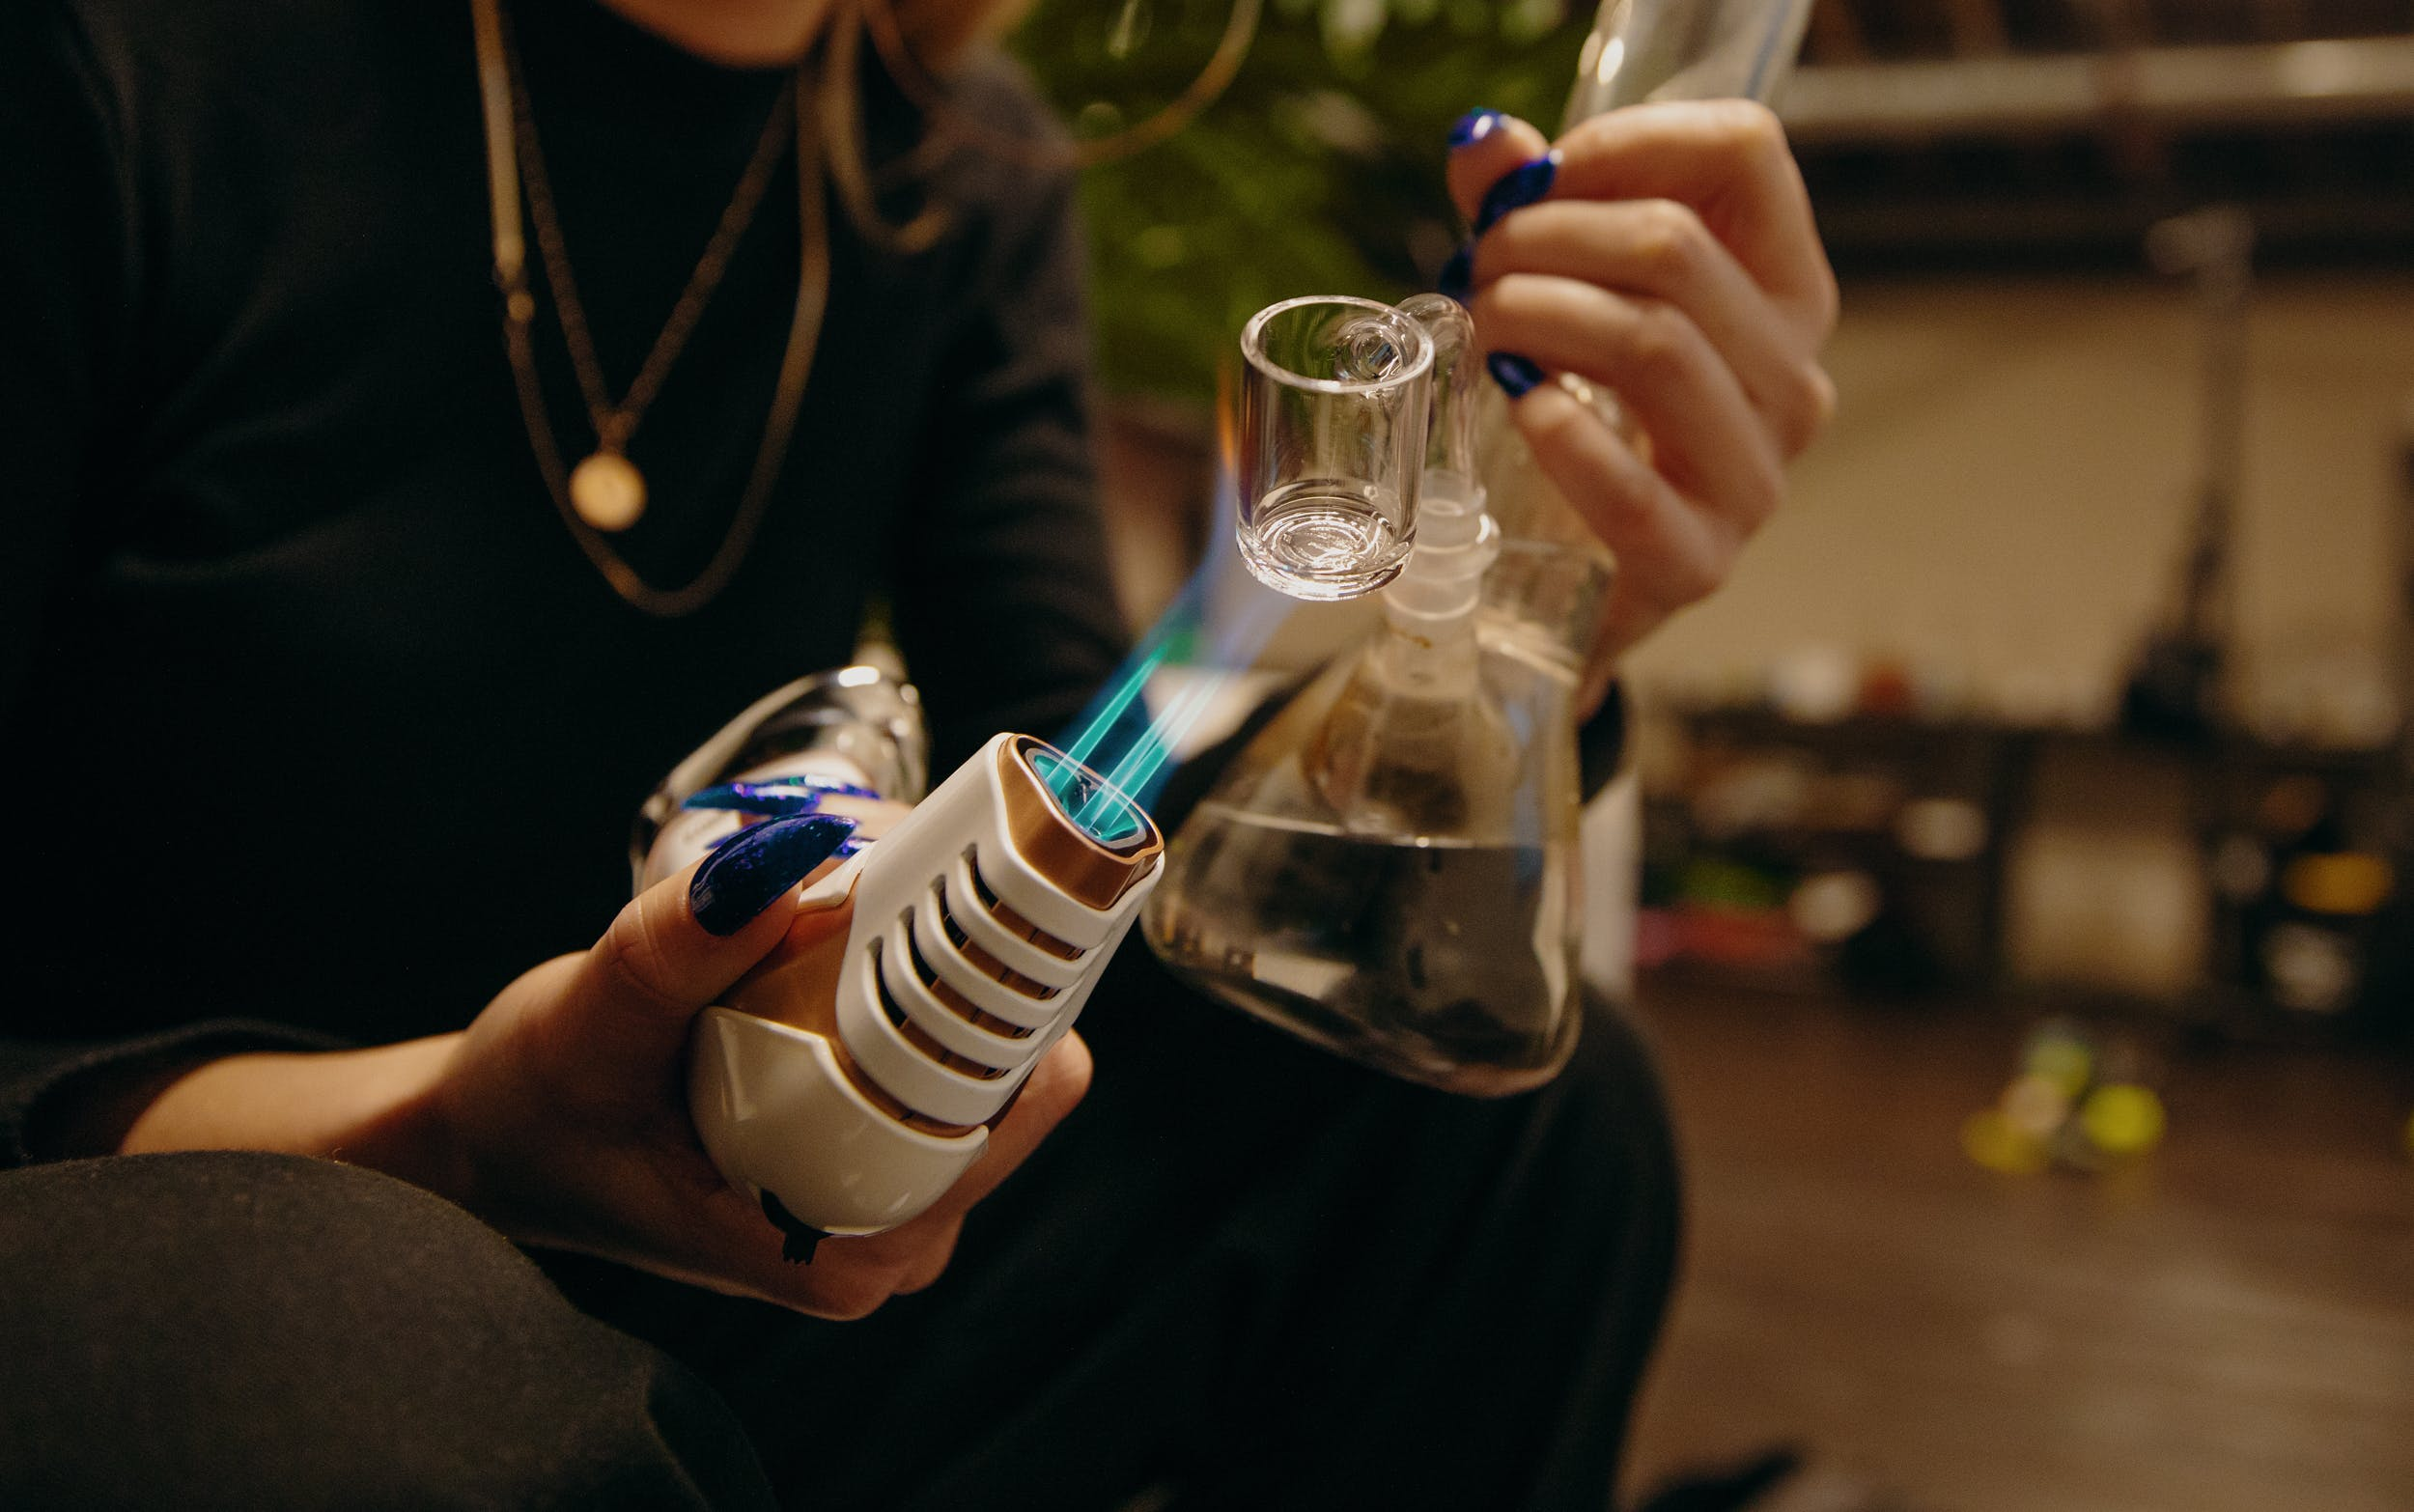 How to Smoke Hash Oil: A woman uses a butane torch to heat up a dab rig